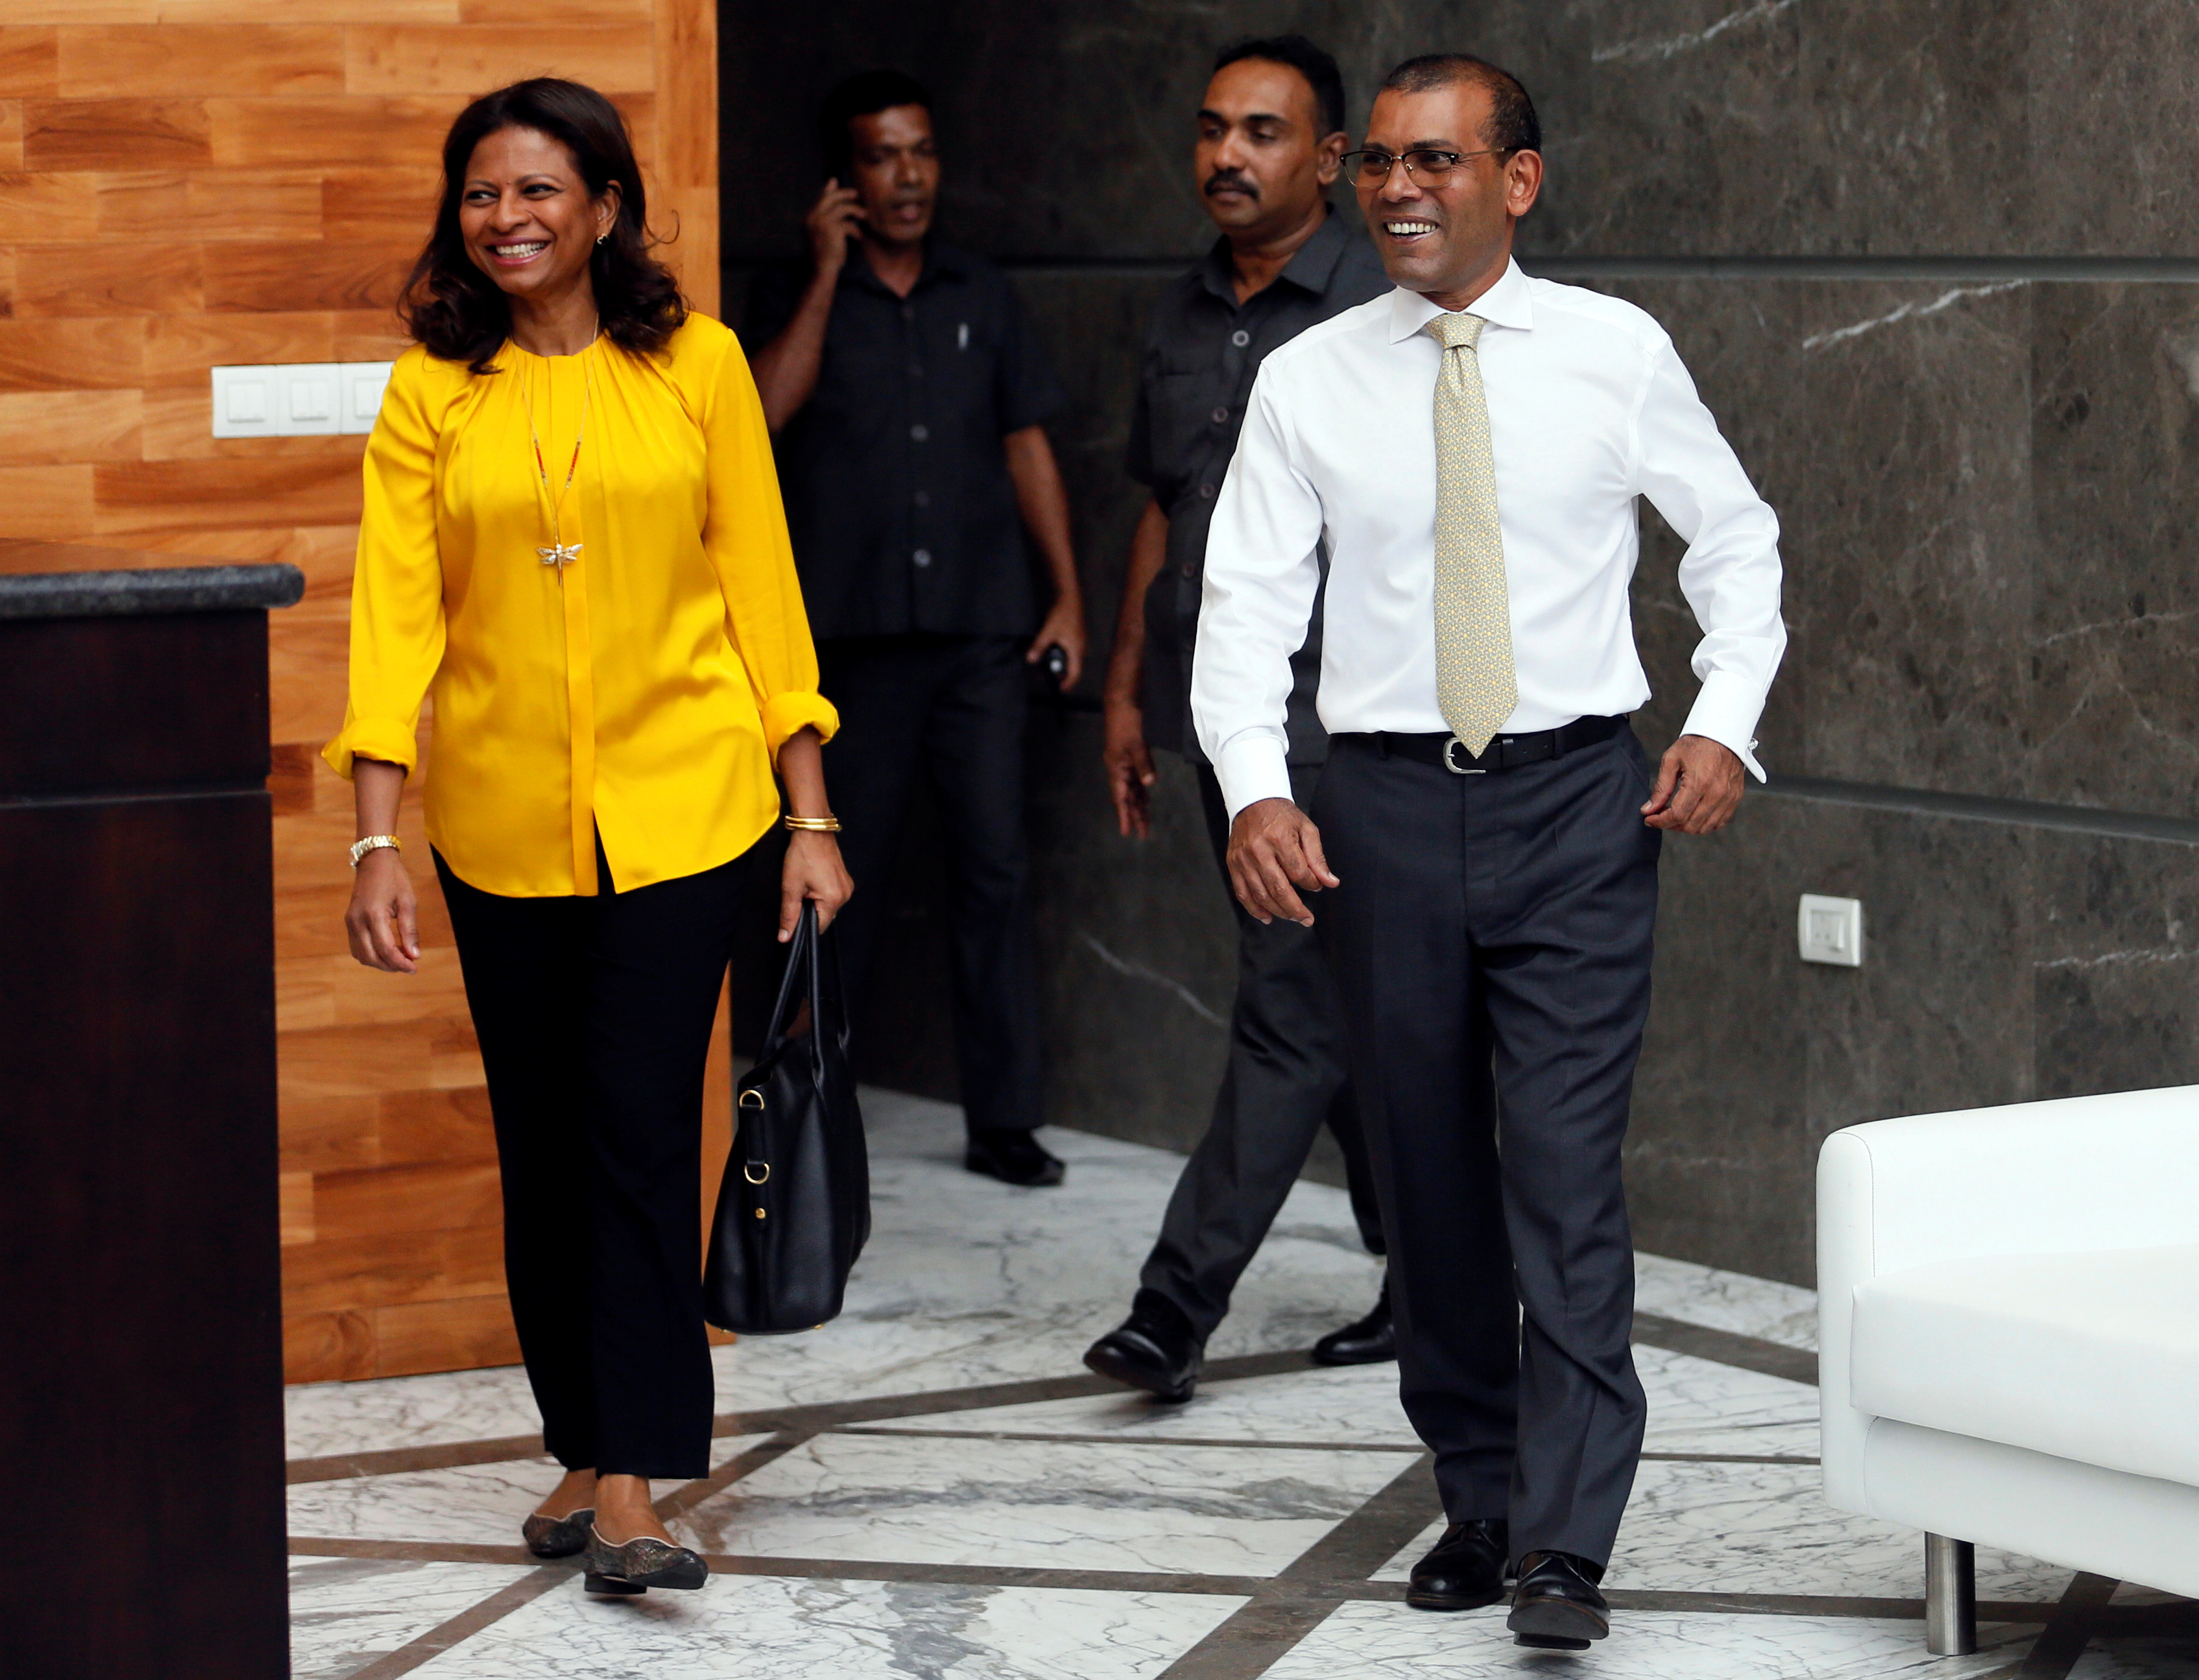 Maldives former President Mohamed Nasheed and his wife Laila Ali Abdulla, leave a private apartment in Sri Lanka to return in their country, after living in exile between London and Colombo for over two and a half years, Colombo, Sri Lanka November 1, 2018. REUTERS/Dinuka Liyanawatte